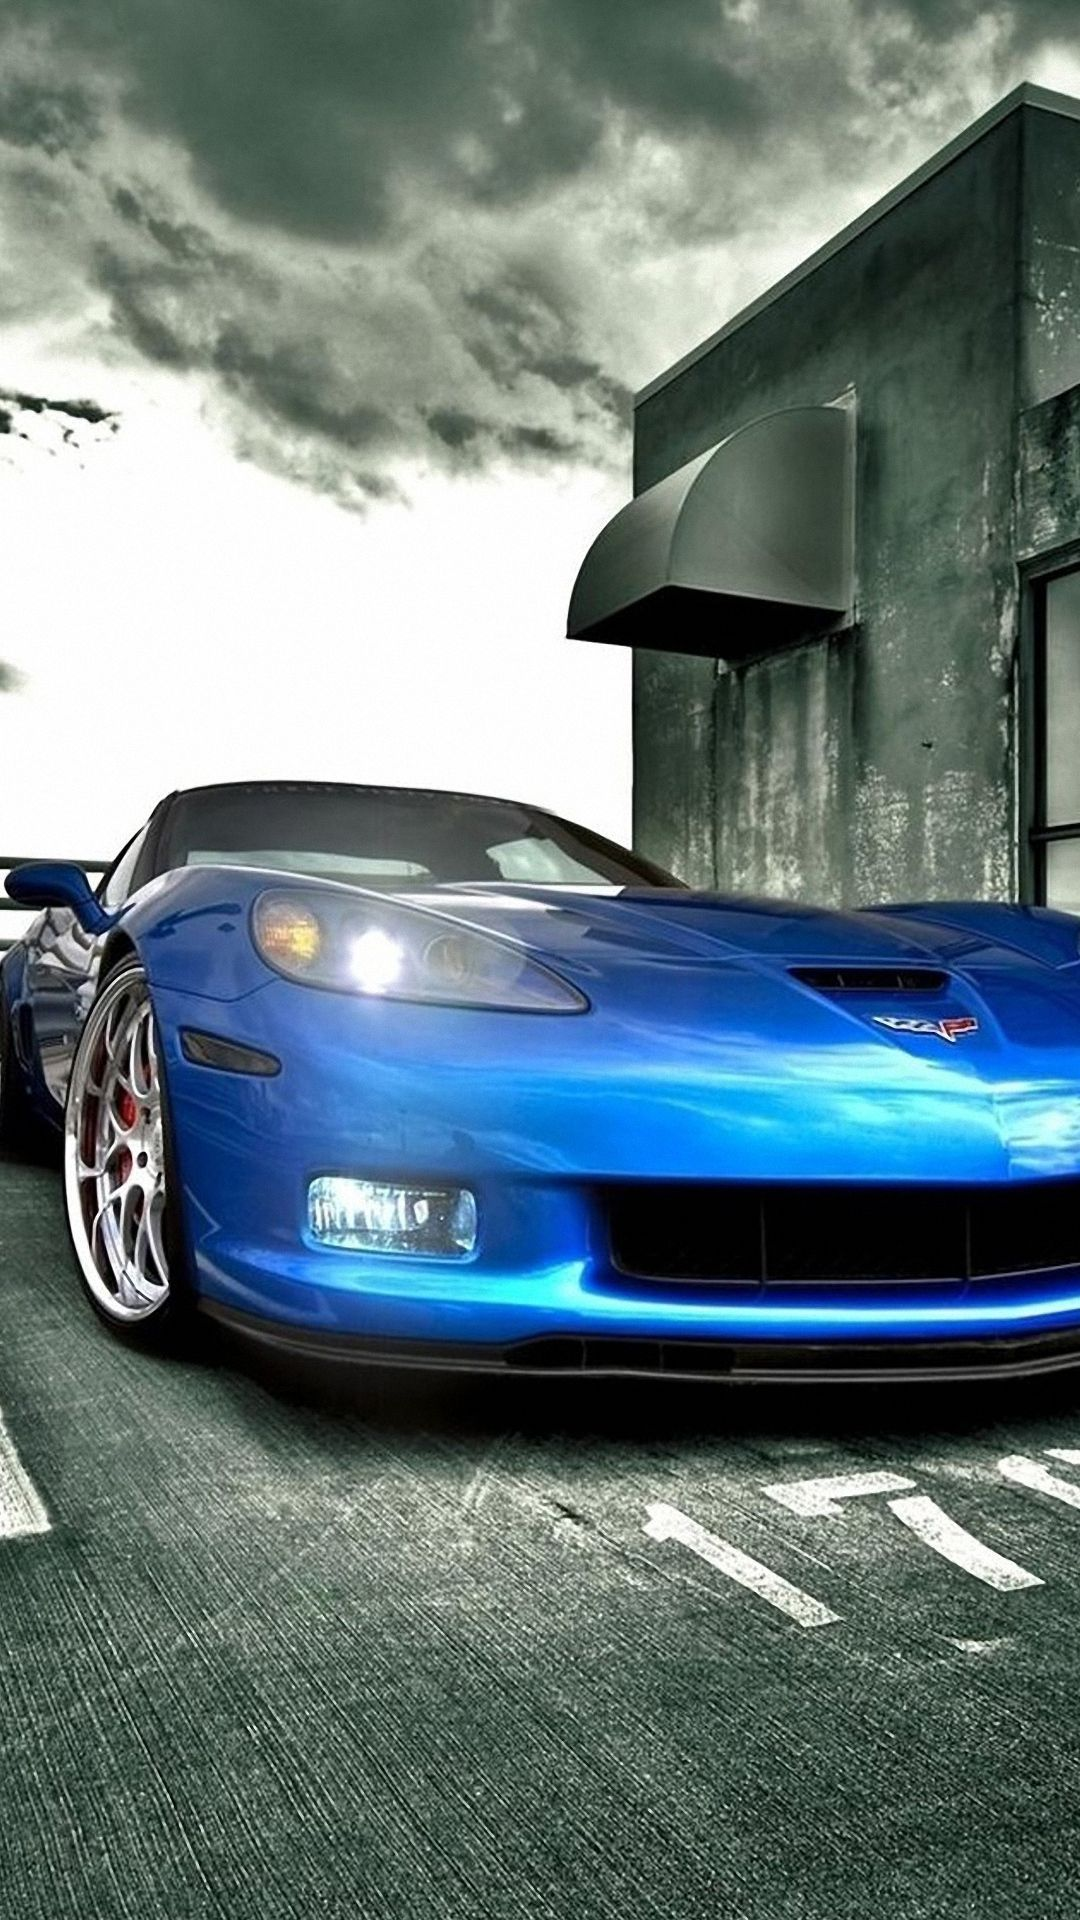 Best Cars Hd Wallpapers This Is A Picture Of Cool Hd Quality Cars These Nice And Luxurious Cars Have Speeds Above Th Car Hd Cool Car Pictures Car In The World